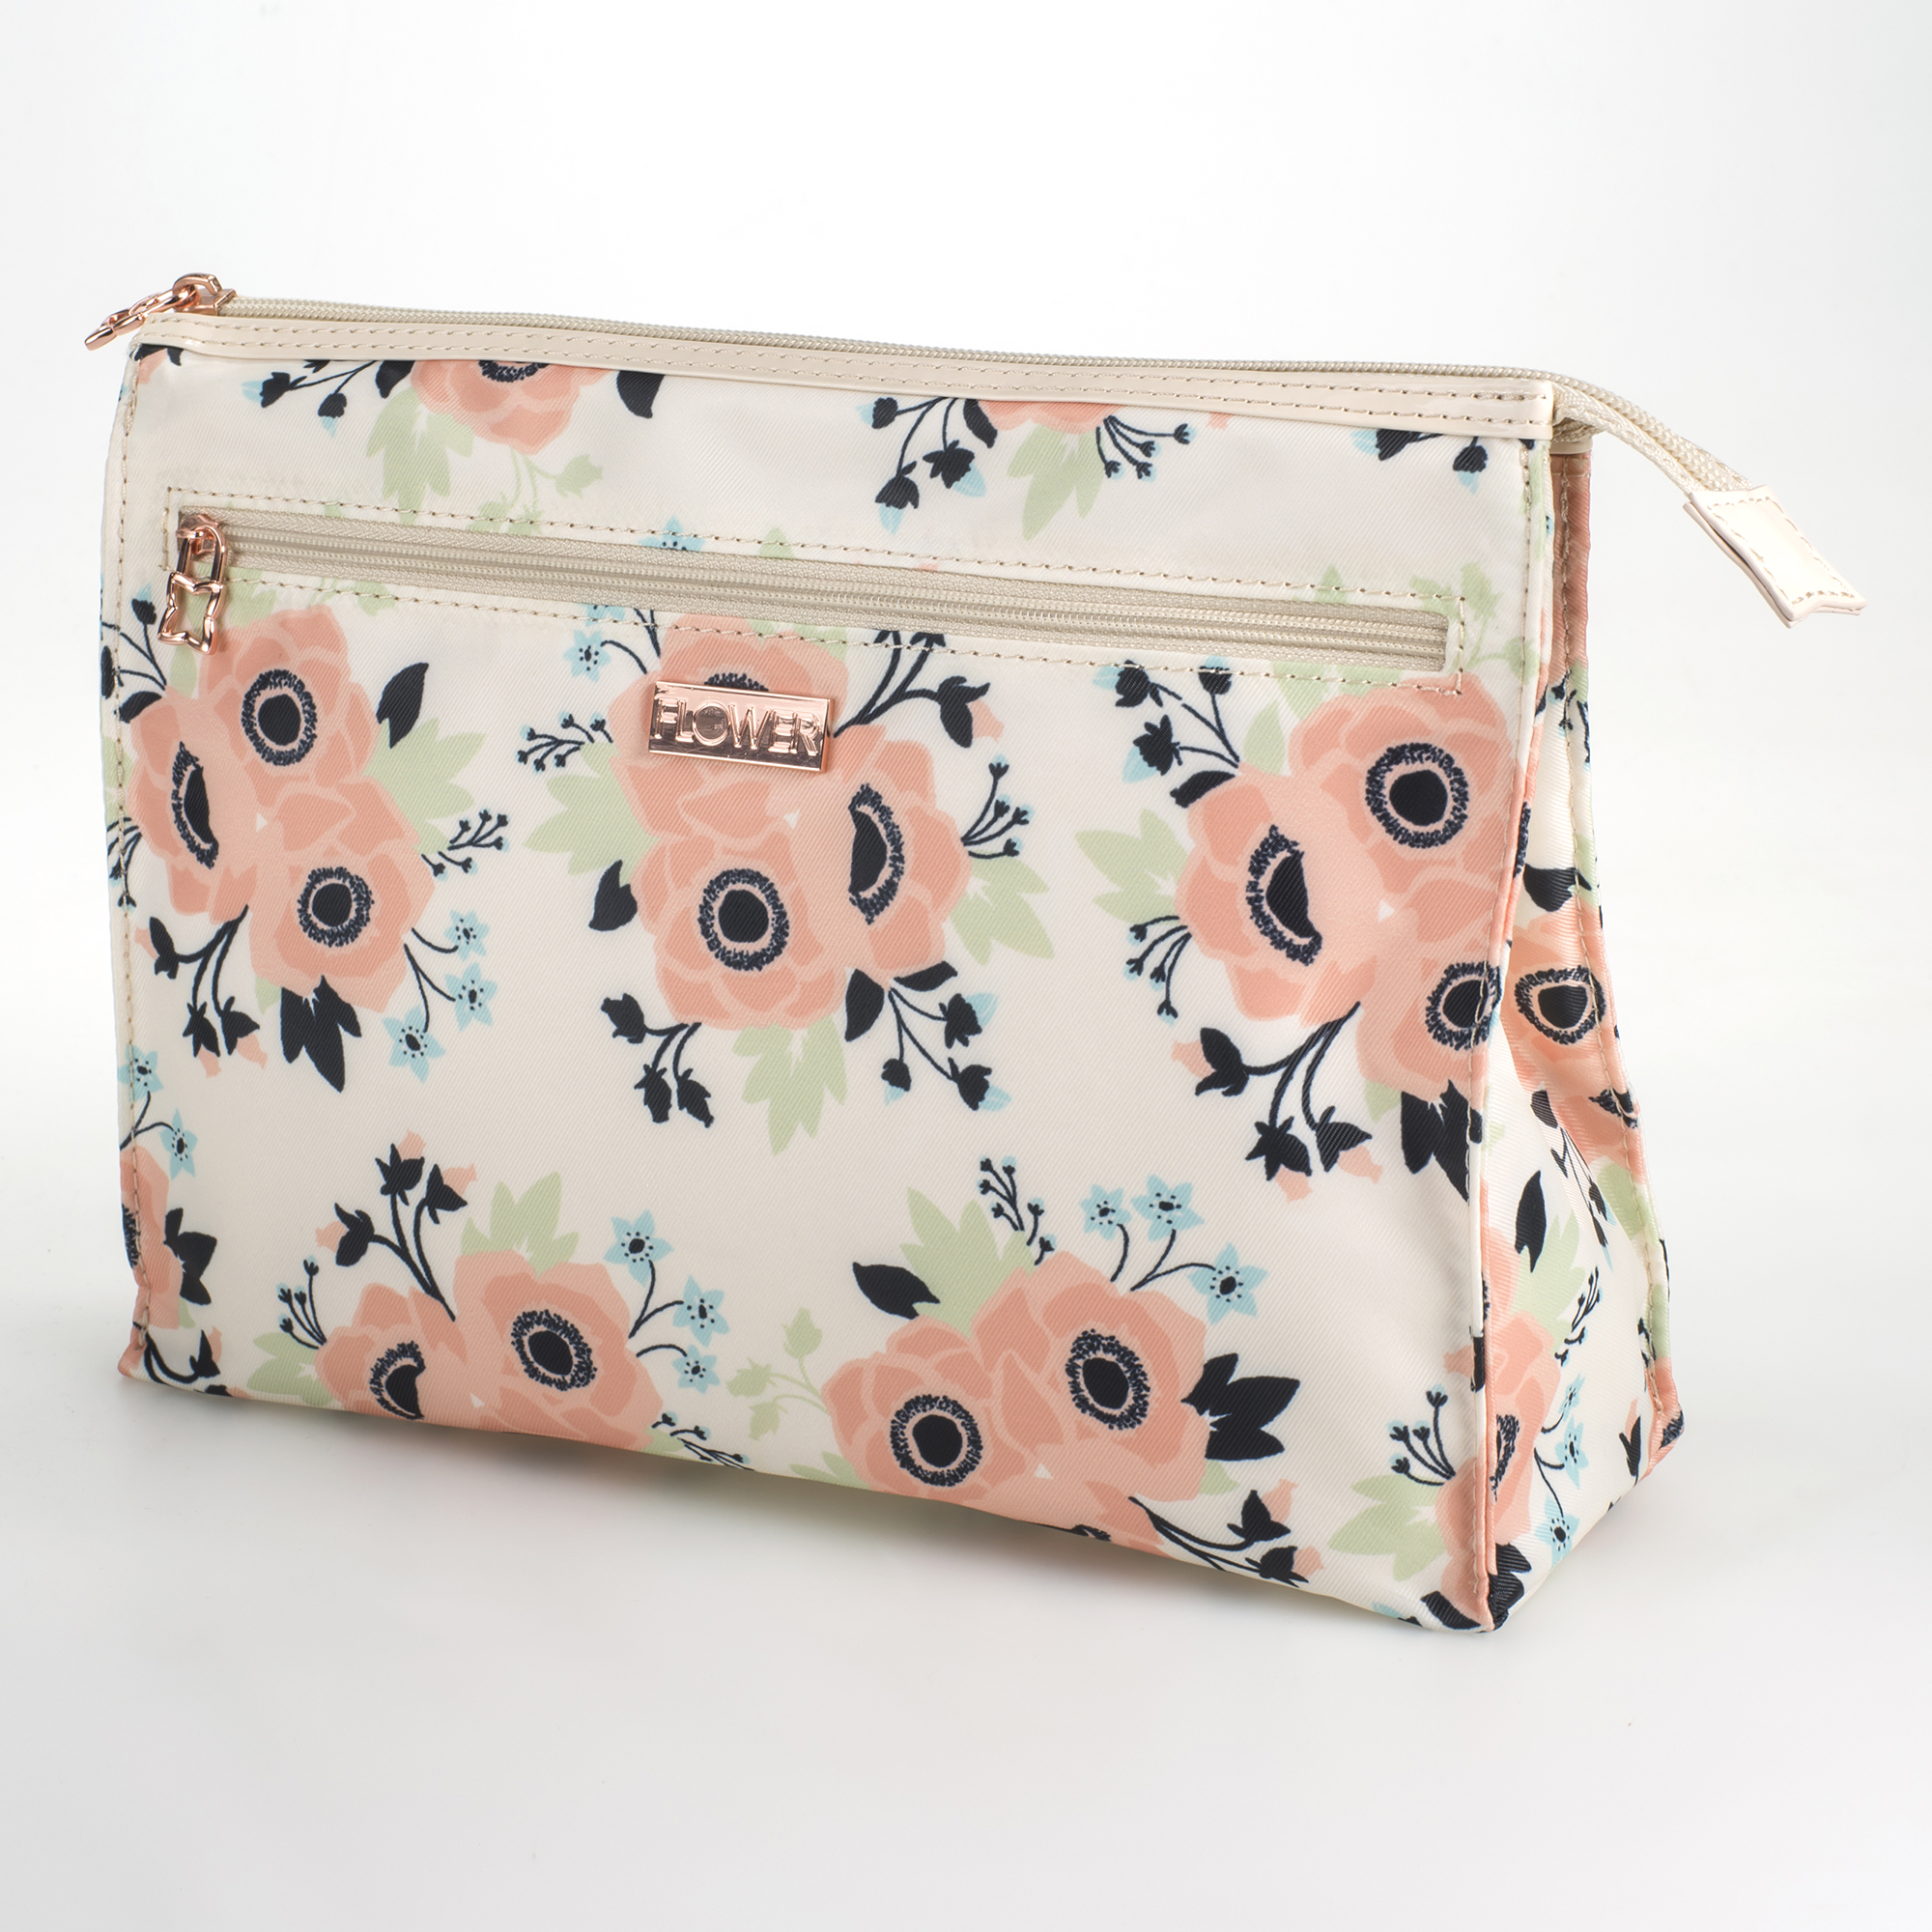 Flower Cosmetics In Bloom Cosmetic Zip Pouch